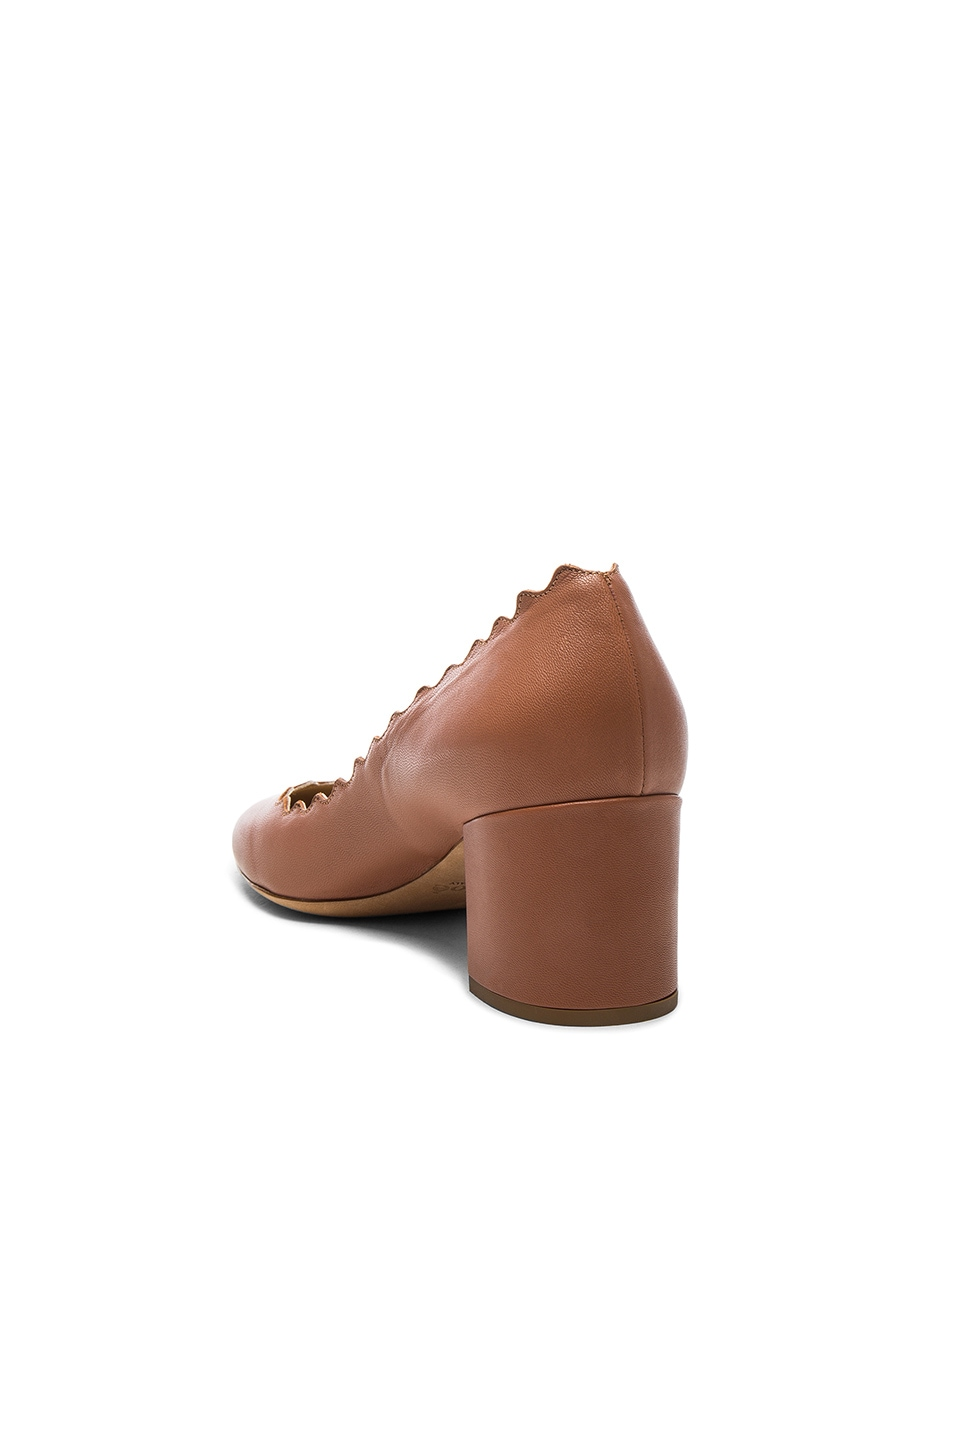 Image 3 of Chloe Lauren Leather Scallop Pumps in Blush Pink